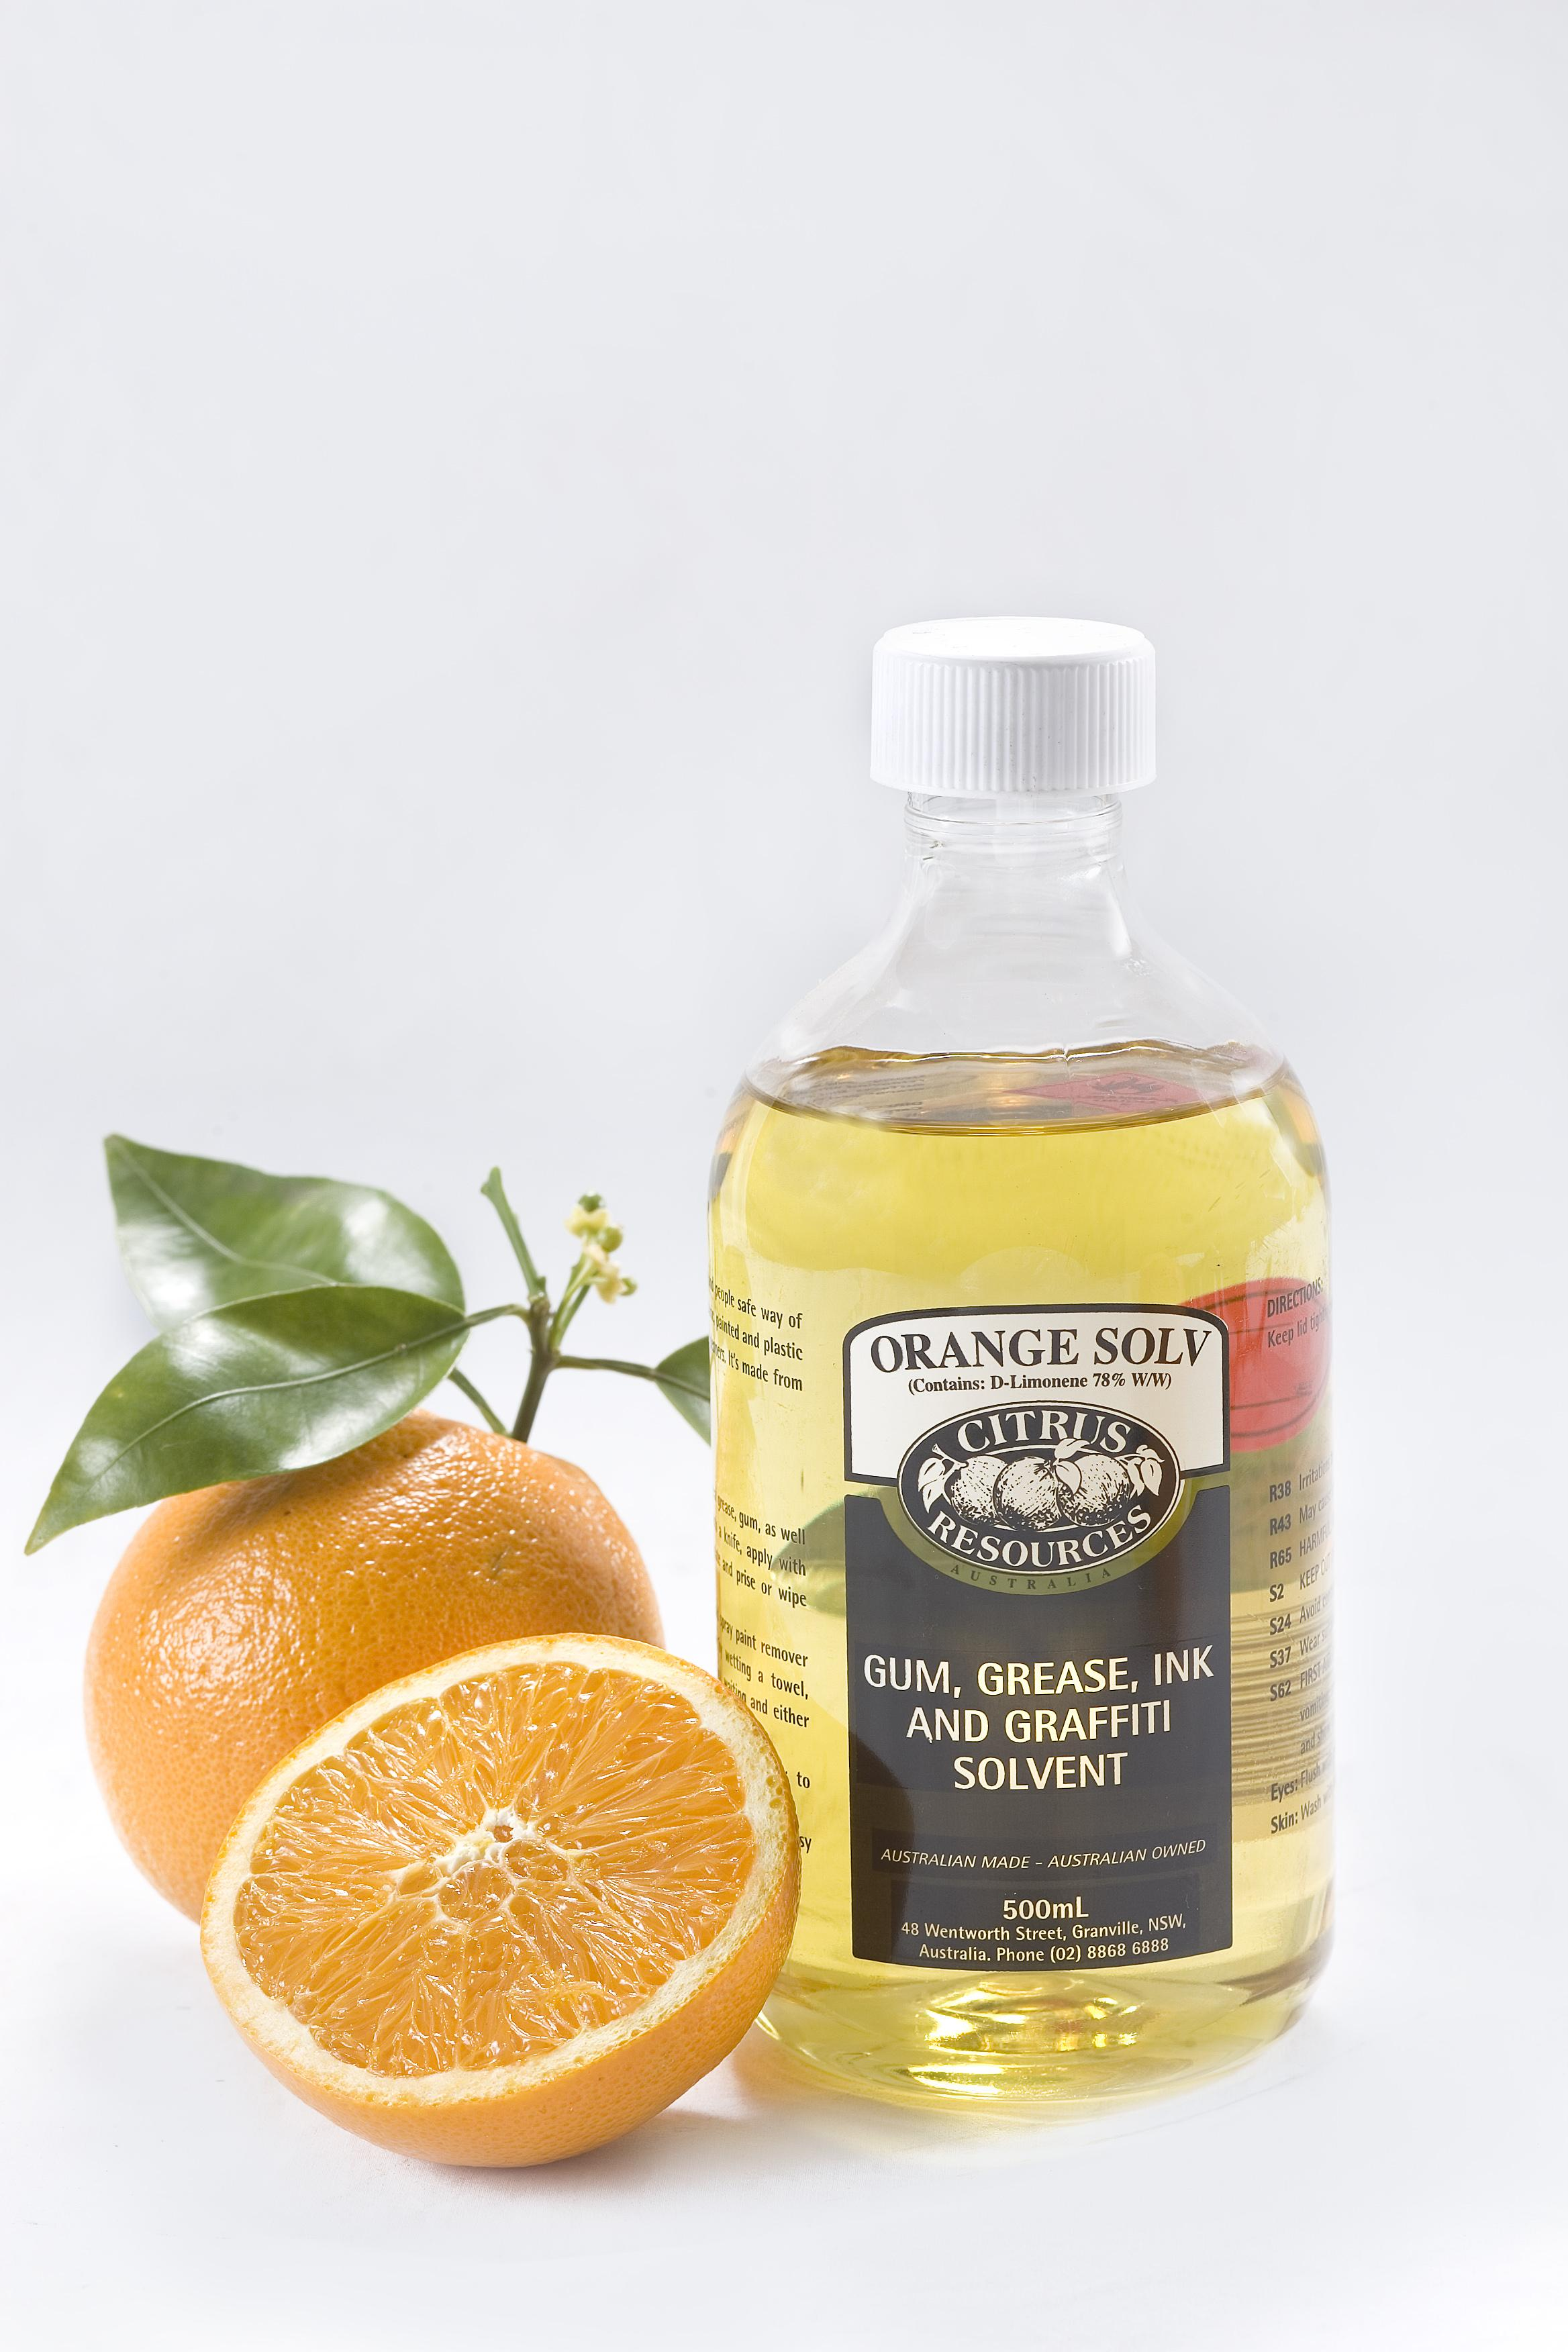 Citrus Resources Orange Solv 5l Chemical Citrus